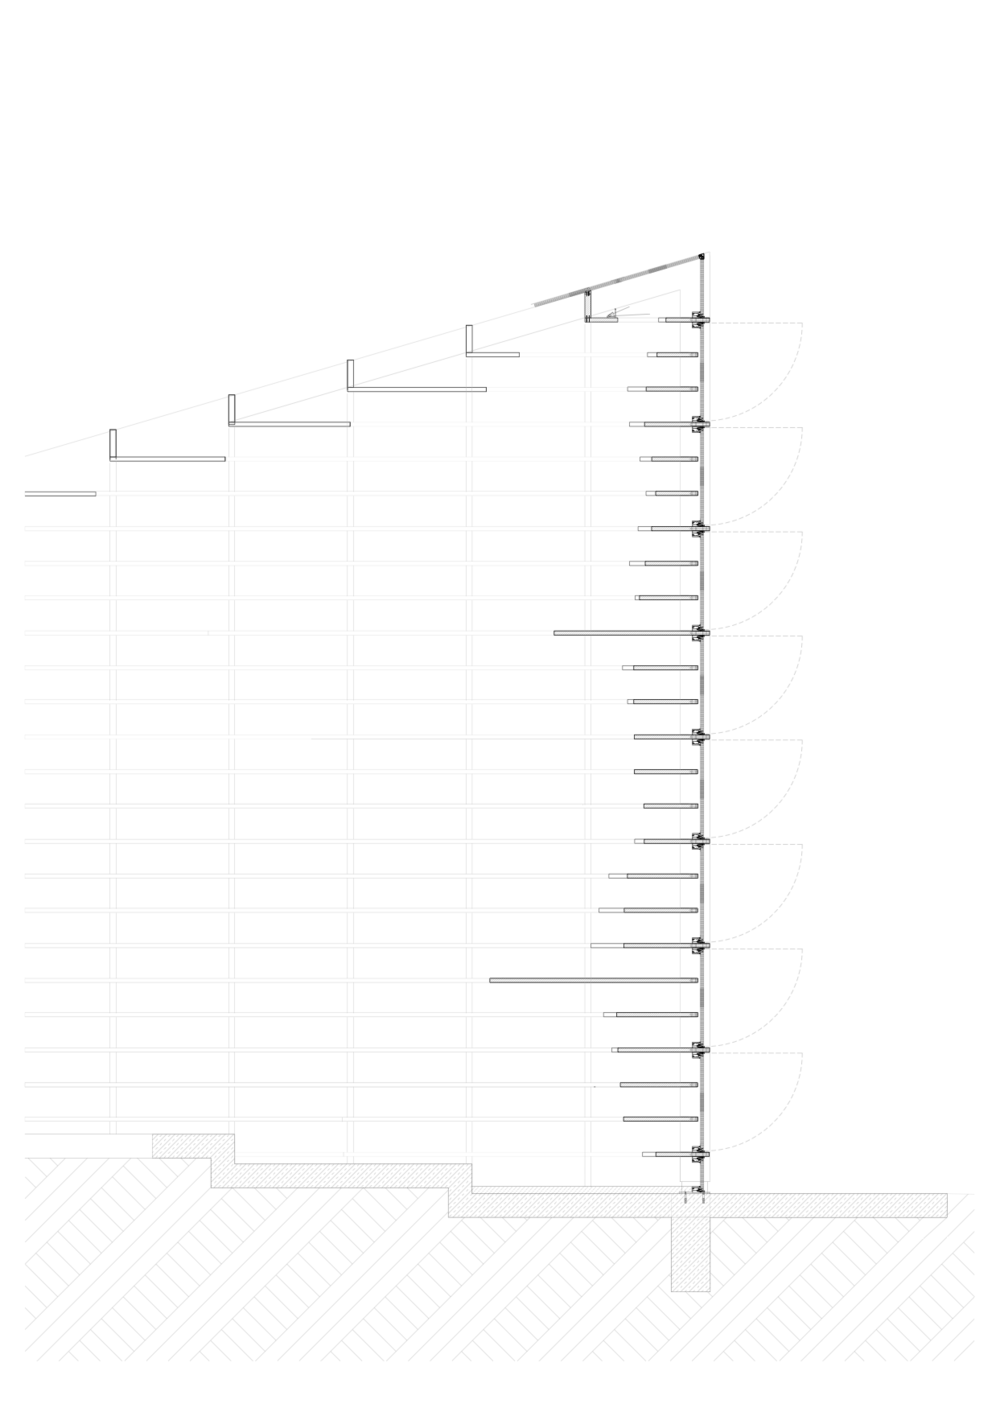 FACADE SECTION WITH OPERABLE LOUVRES